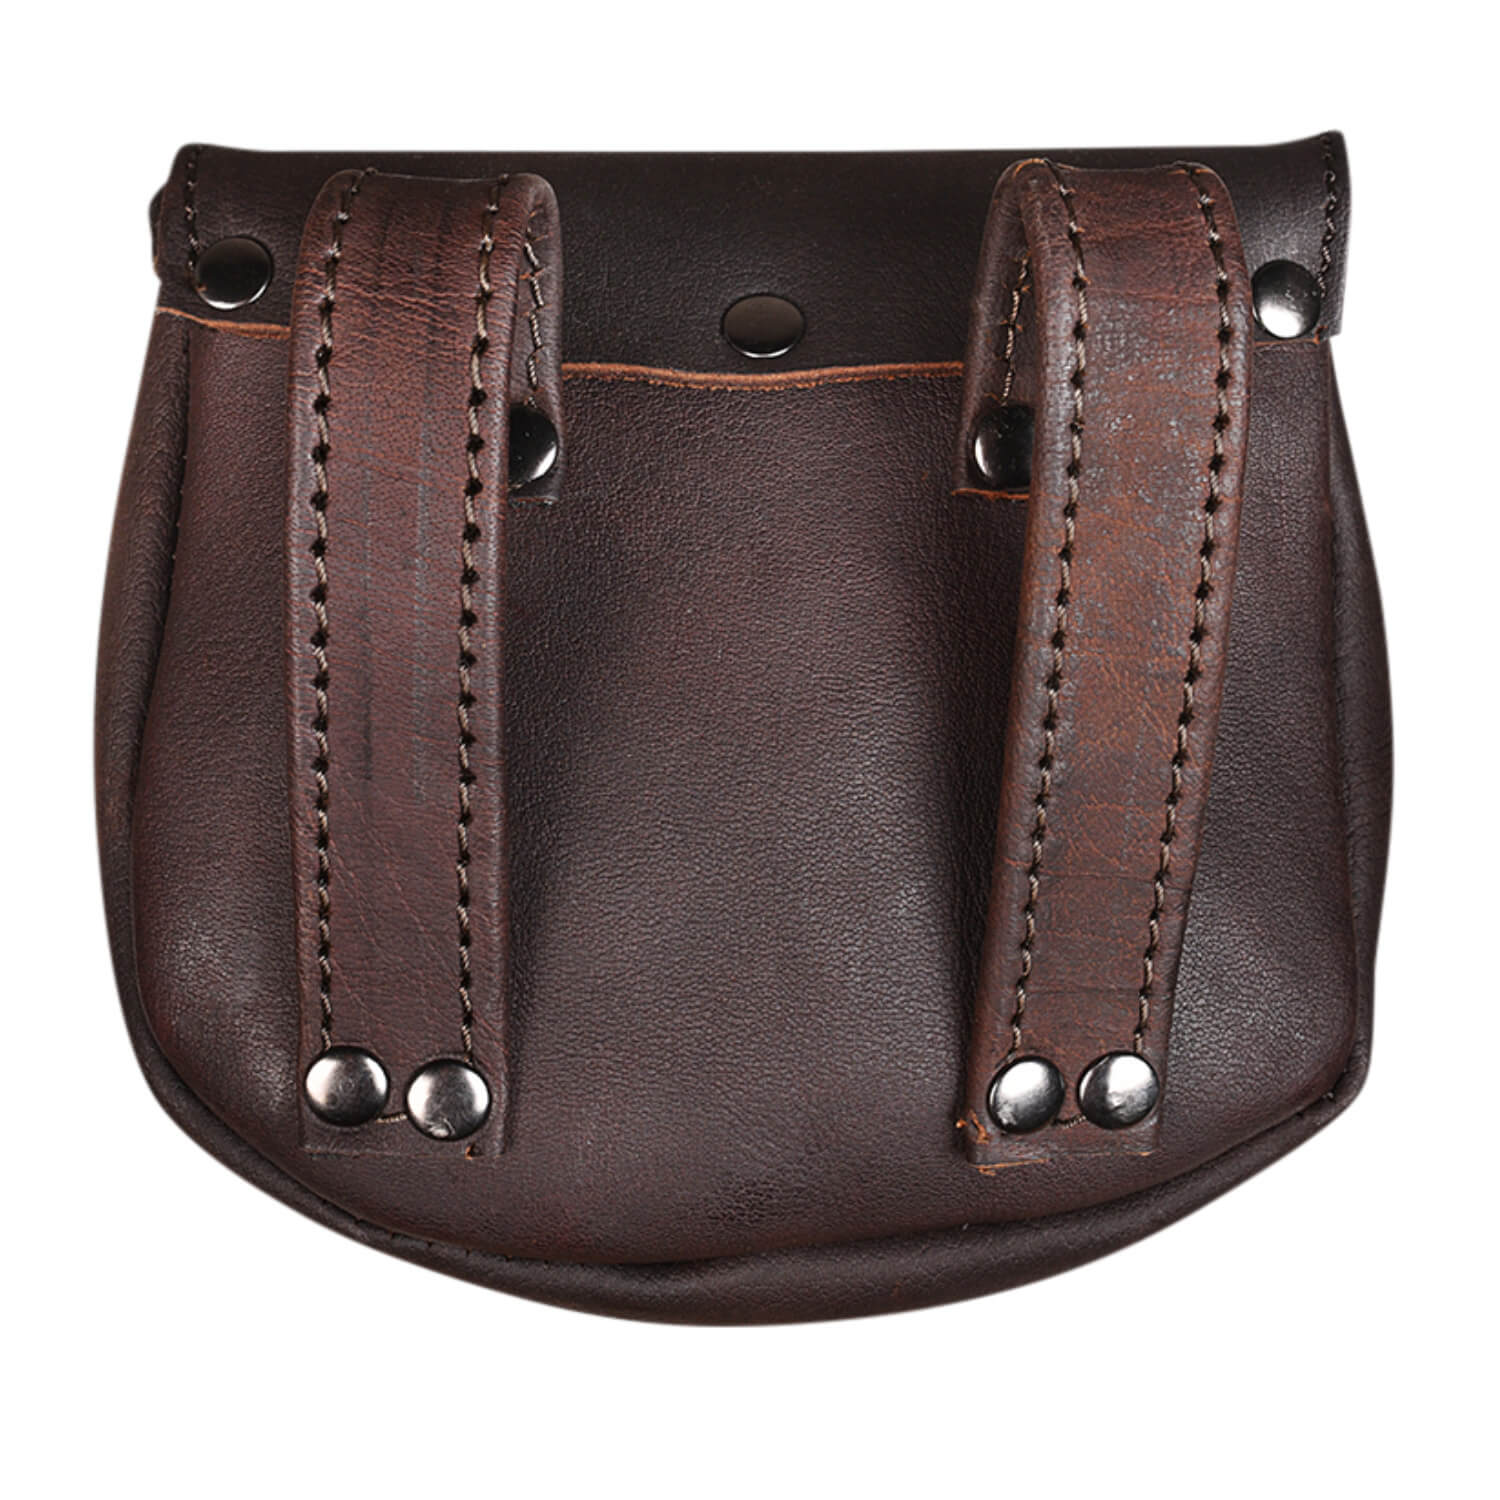 Leon belt bag, large